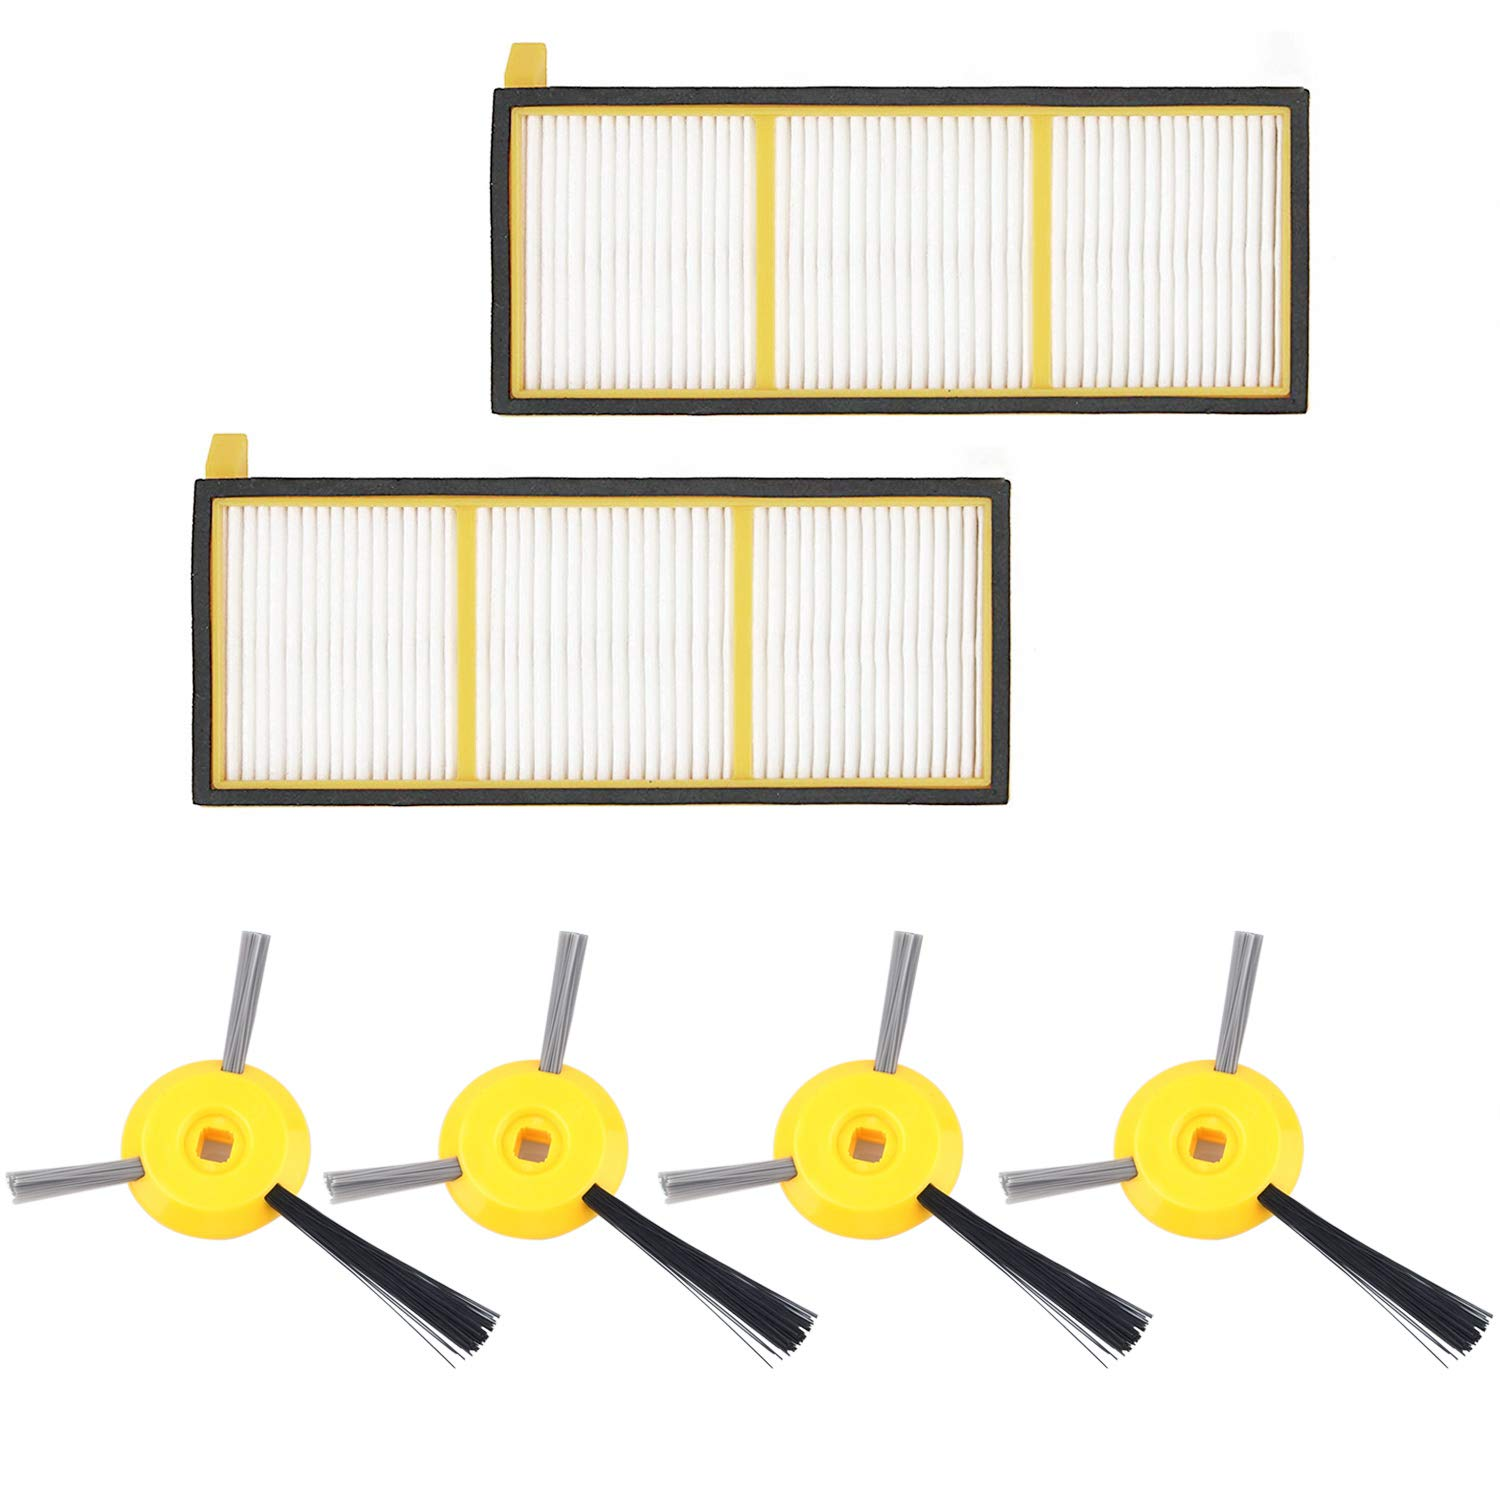 Knowledgeable Vacuum Filter And Side Brushes Replacement Kit For Shark Ion Robot Rv700 Rv720 Rv750 Rv750c Rv755 Vacuum Cleaner Parts includes 4 Side Brushes 2fi Attractive Fashion